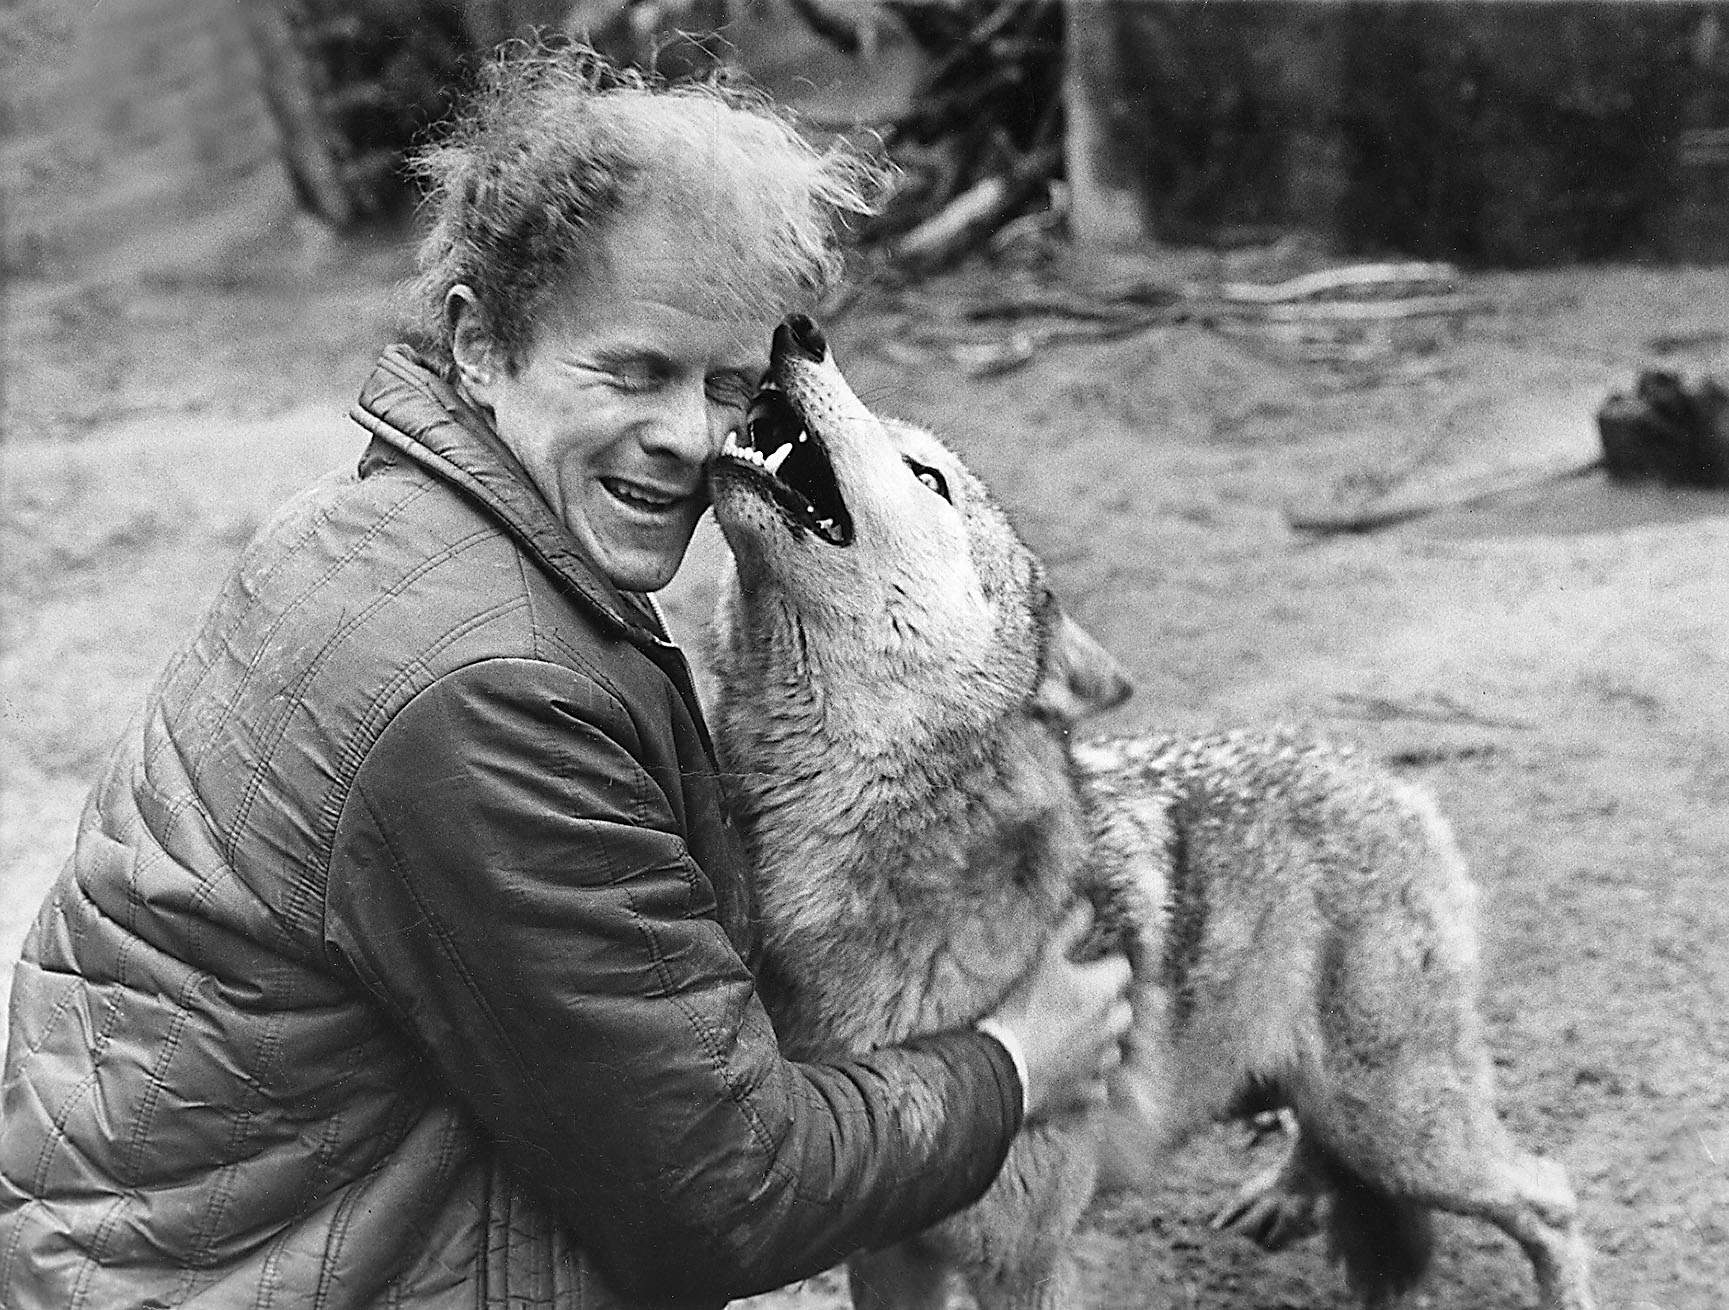 Keeper John Laing gets a big welcome from female wolf Lass.